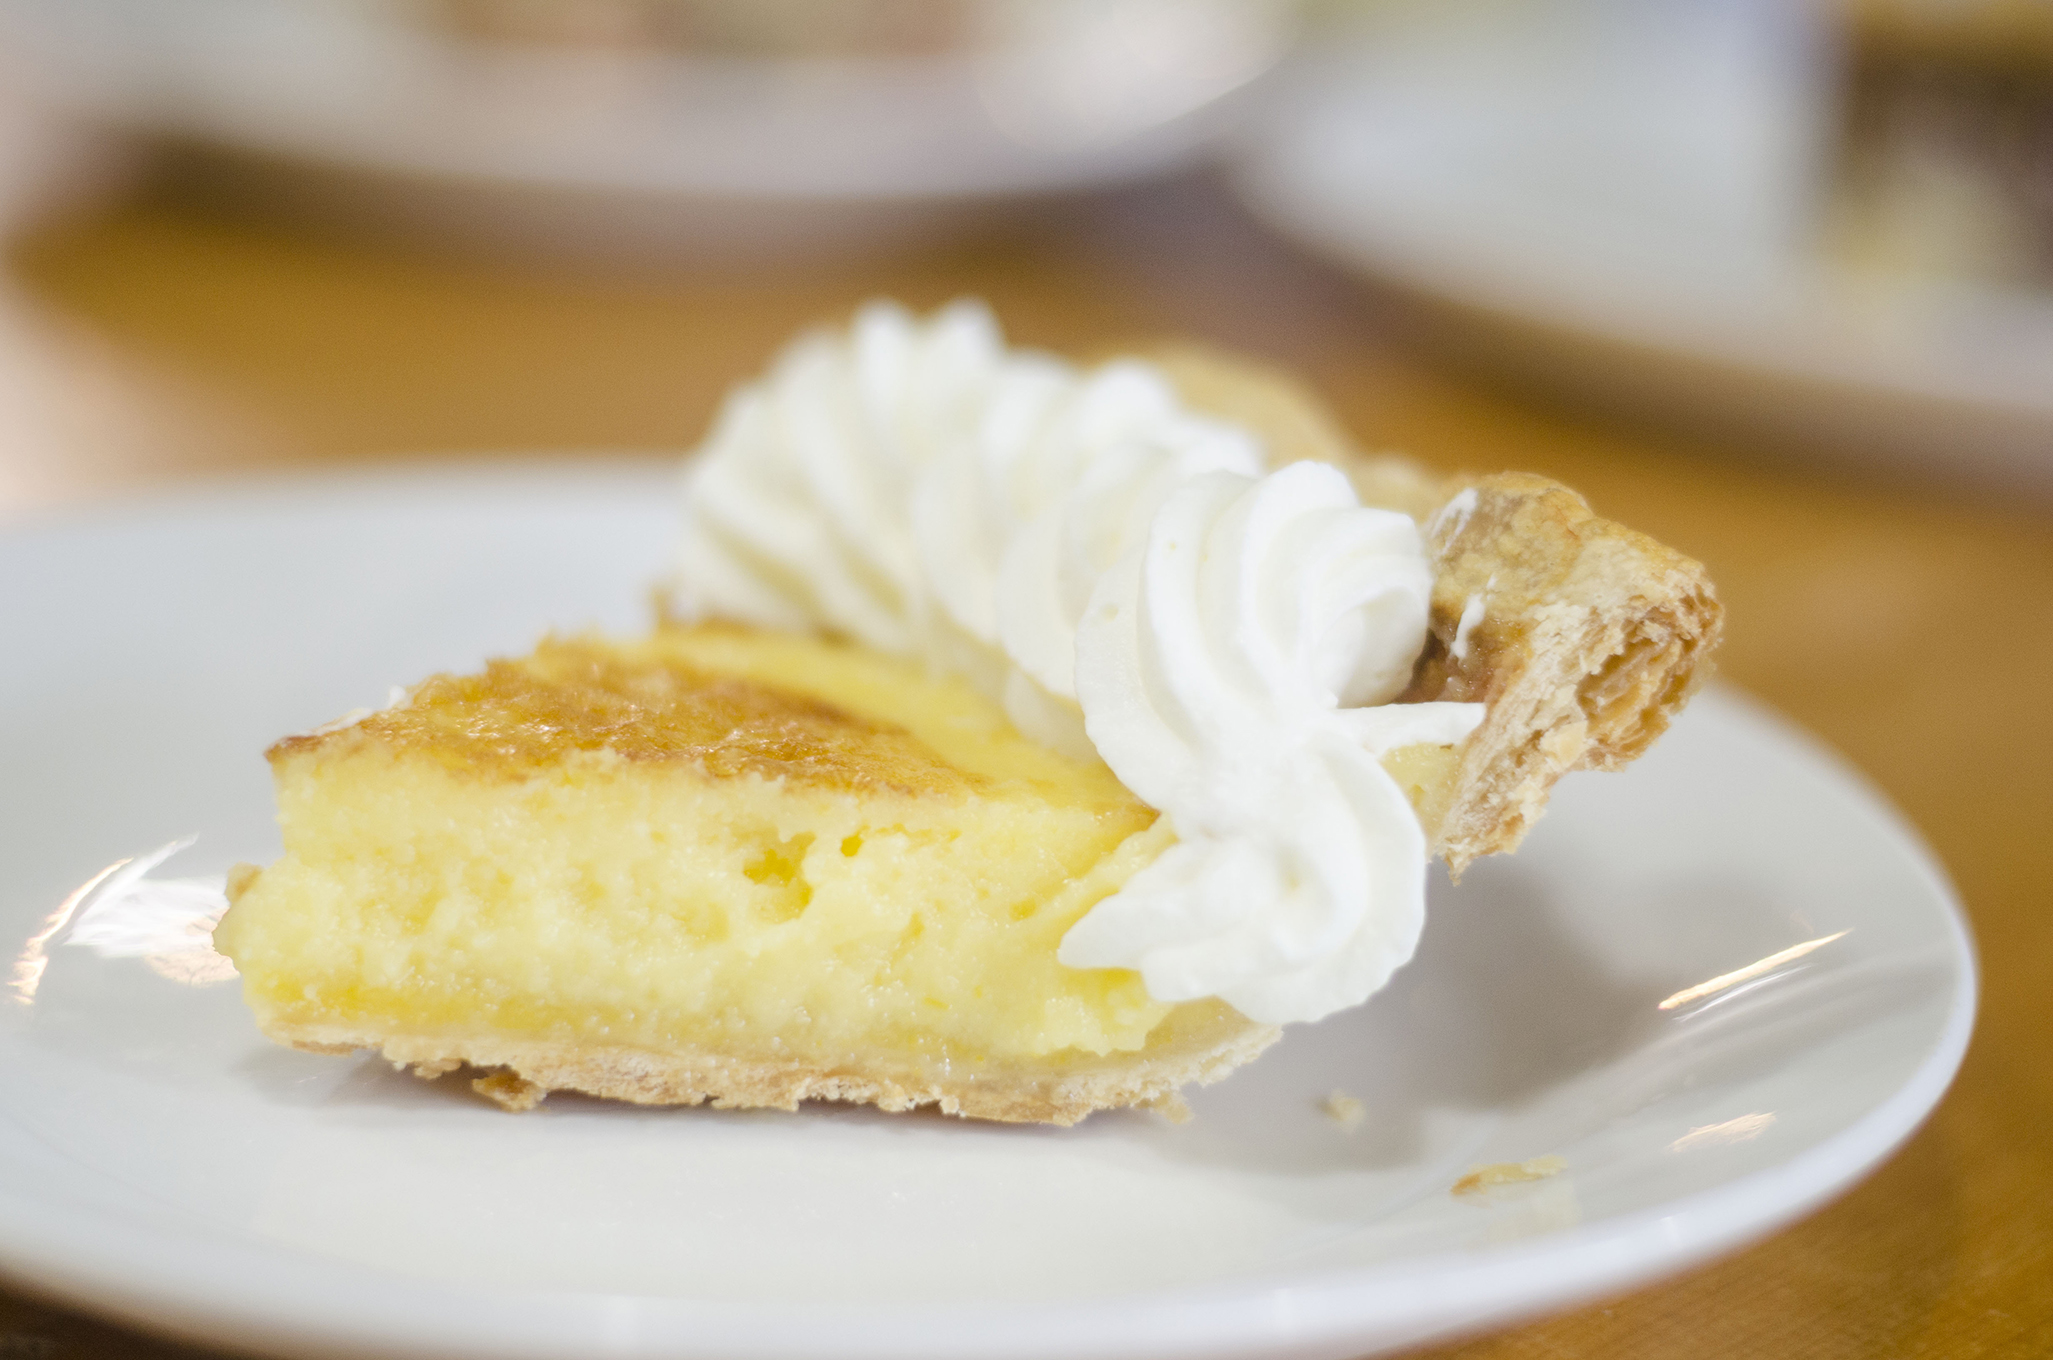 Lemon Custard pie from Riverside Pie Cafe in Windsor, Ontario.